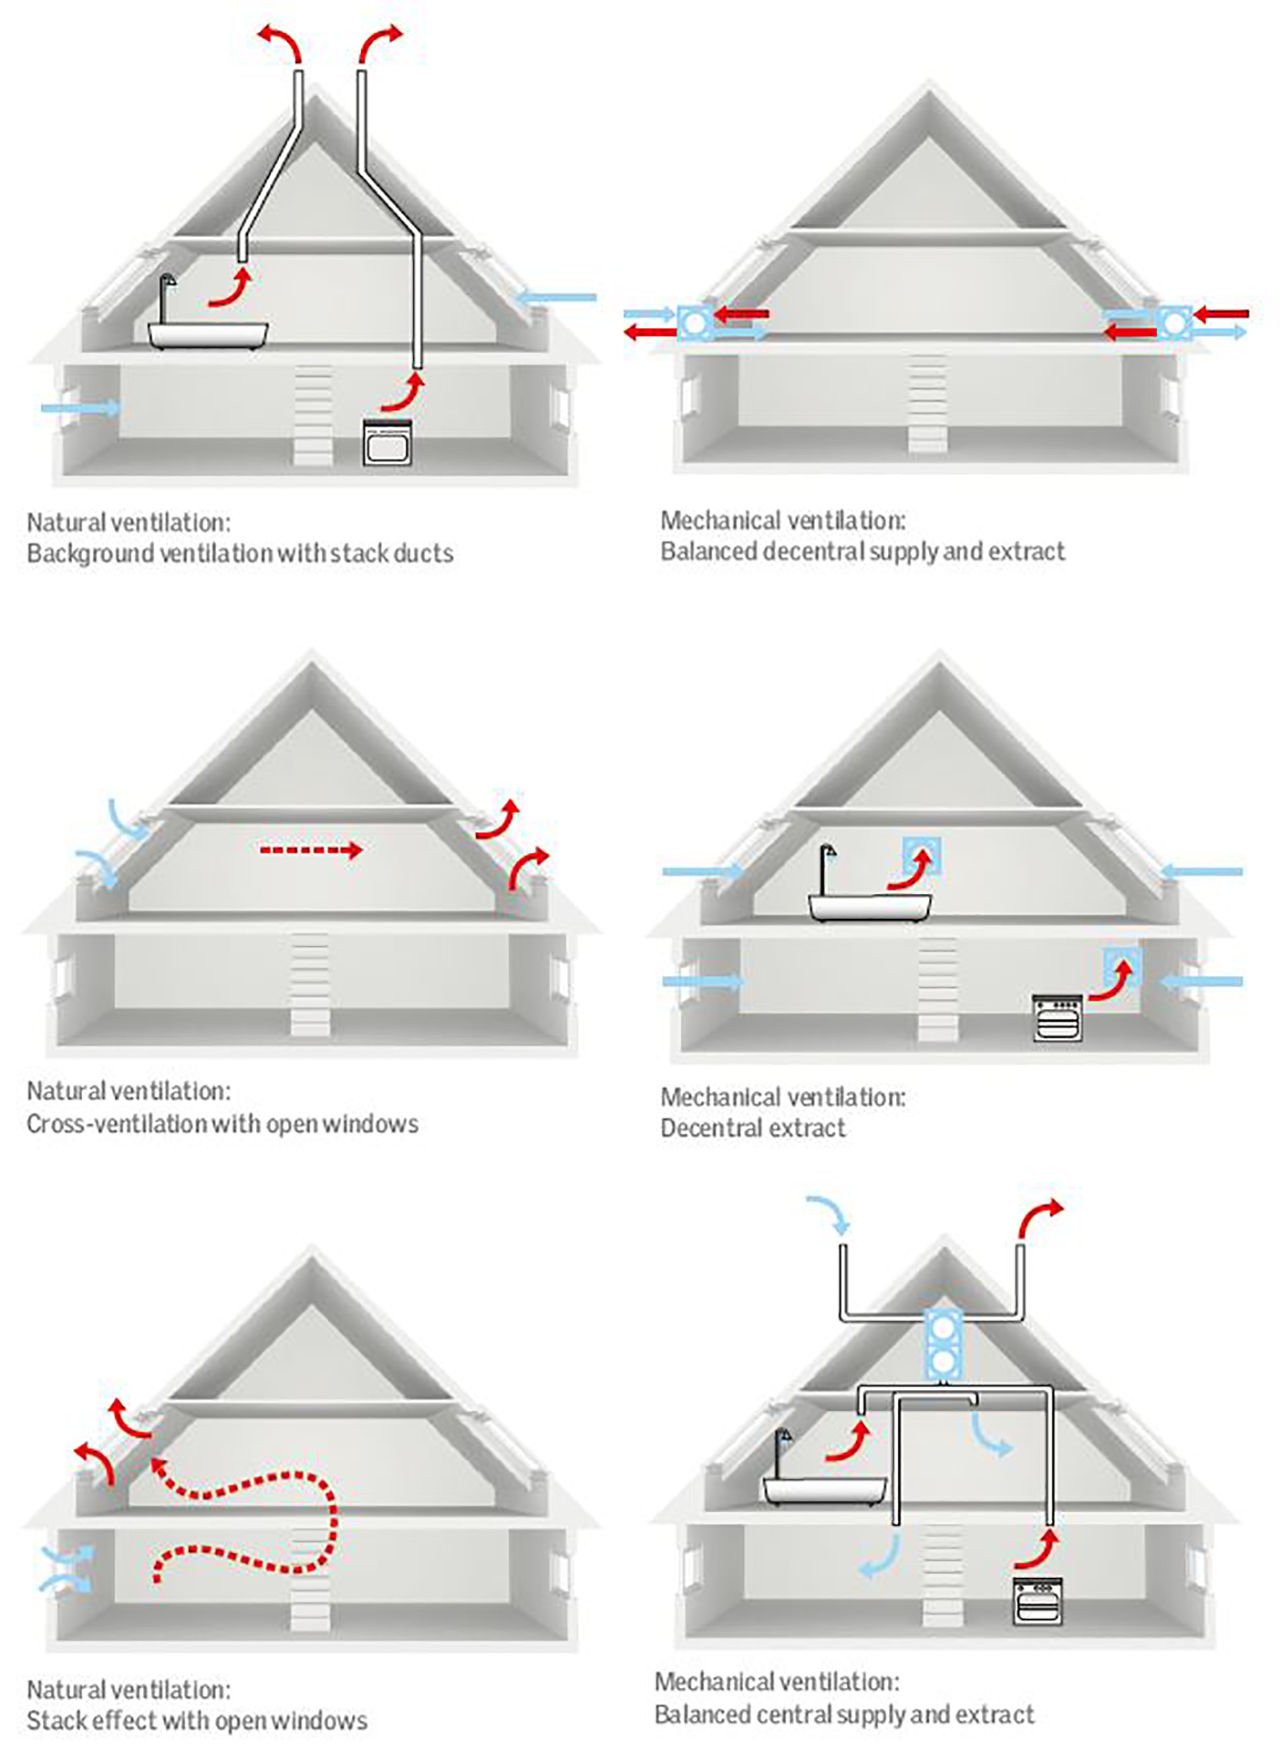 ventilation and ventilation systems – daylight, energy and indoor